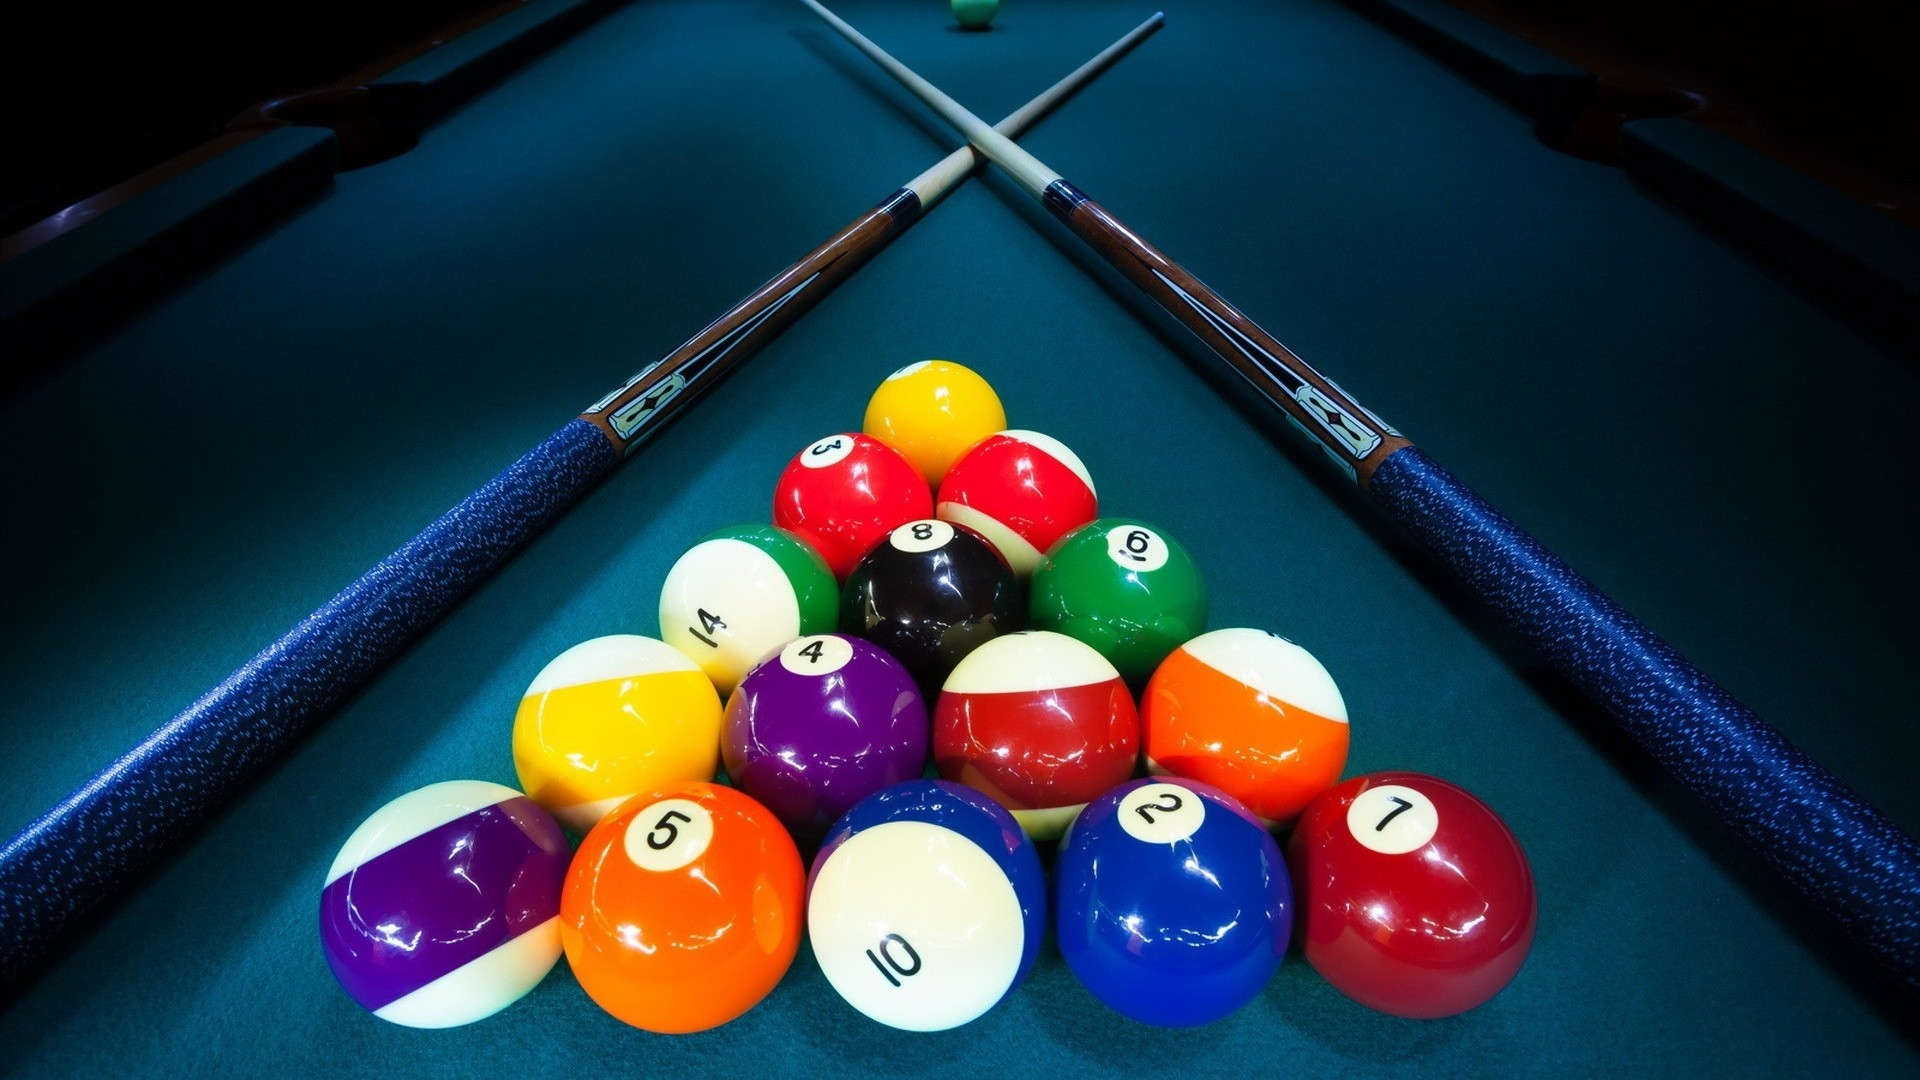 Billiards Game Table for 1920 x 1080 HDTV 1080p resolution